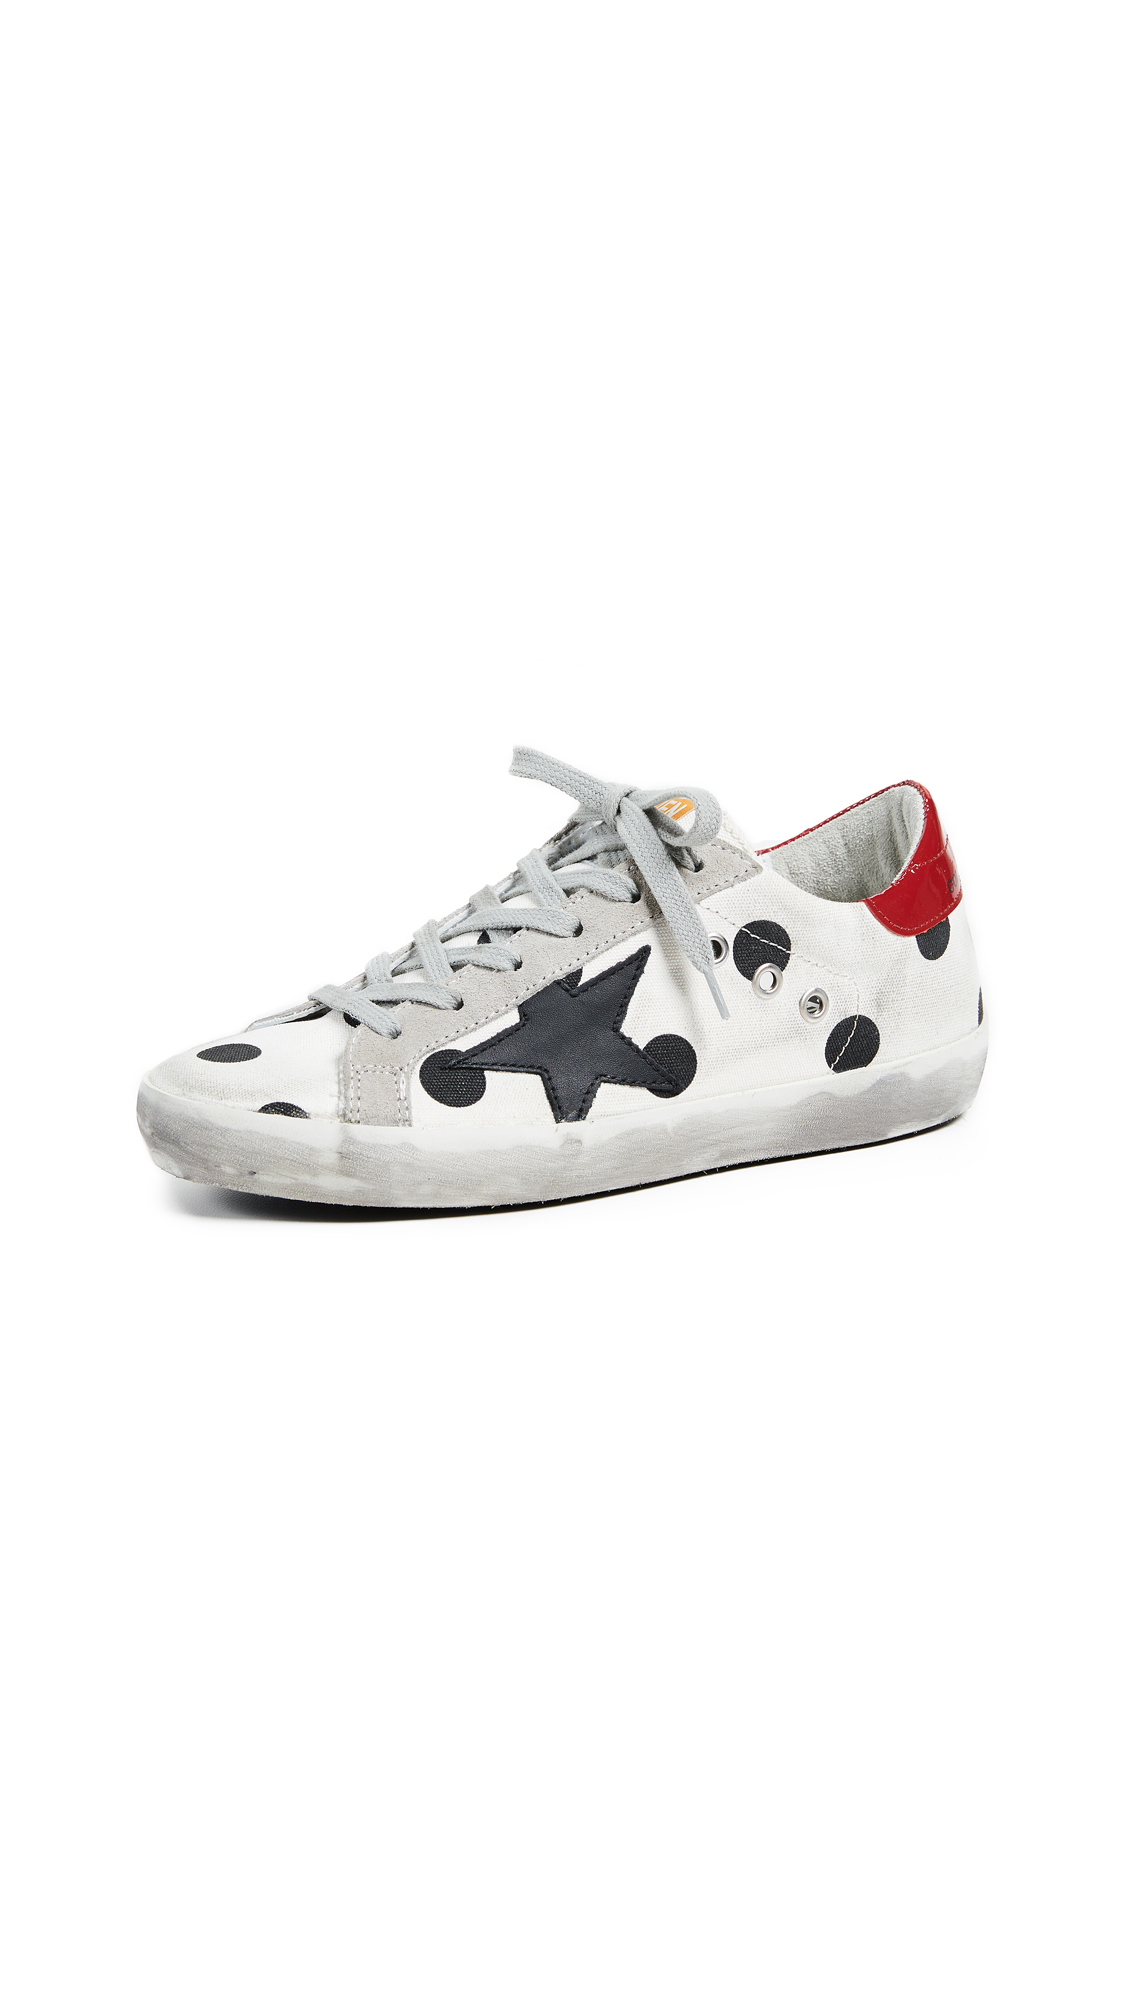 Golden Goose Superstar Sneakers - White/Black Polka Dot